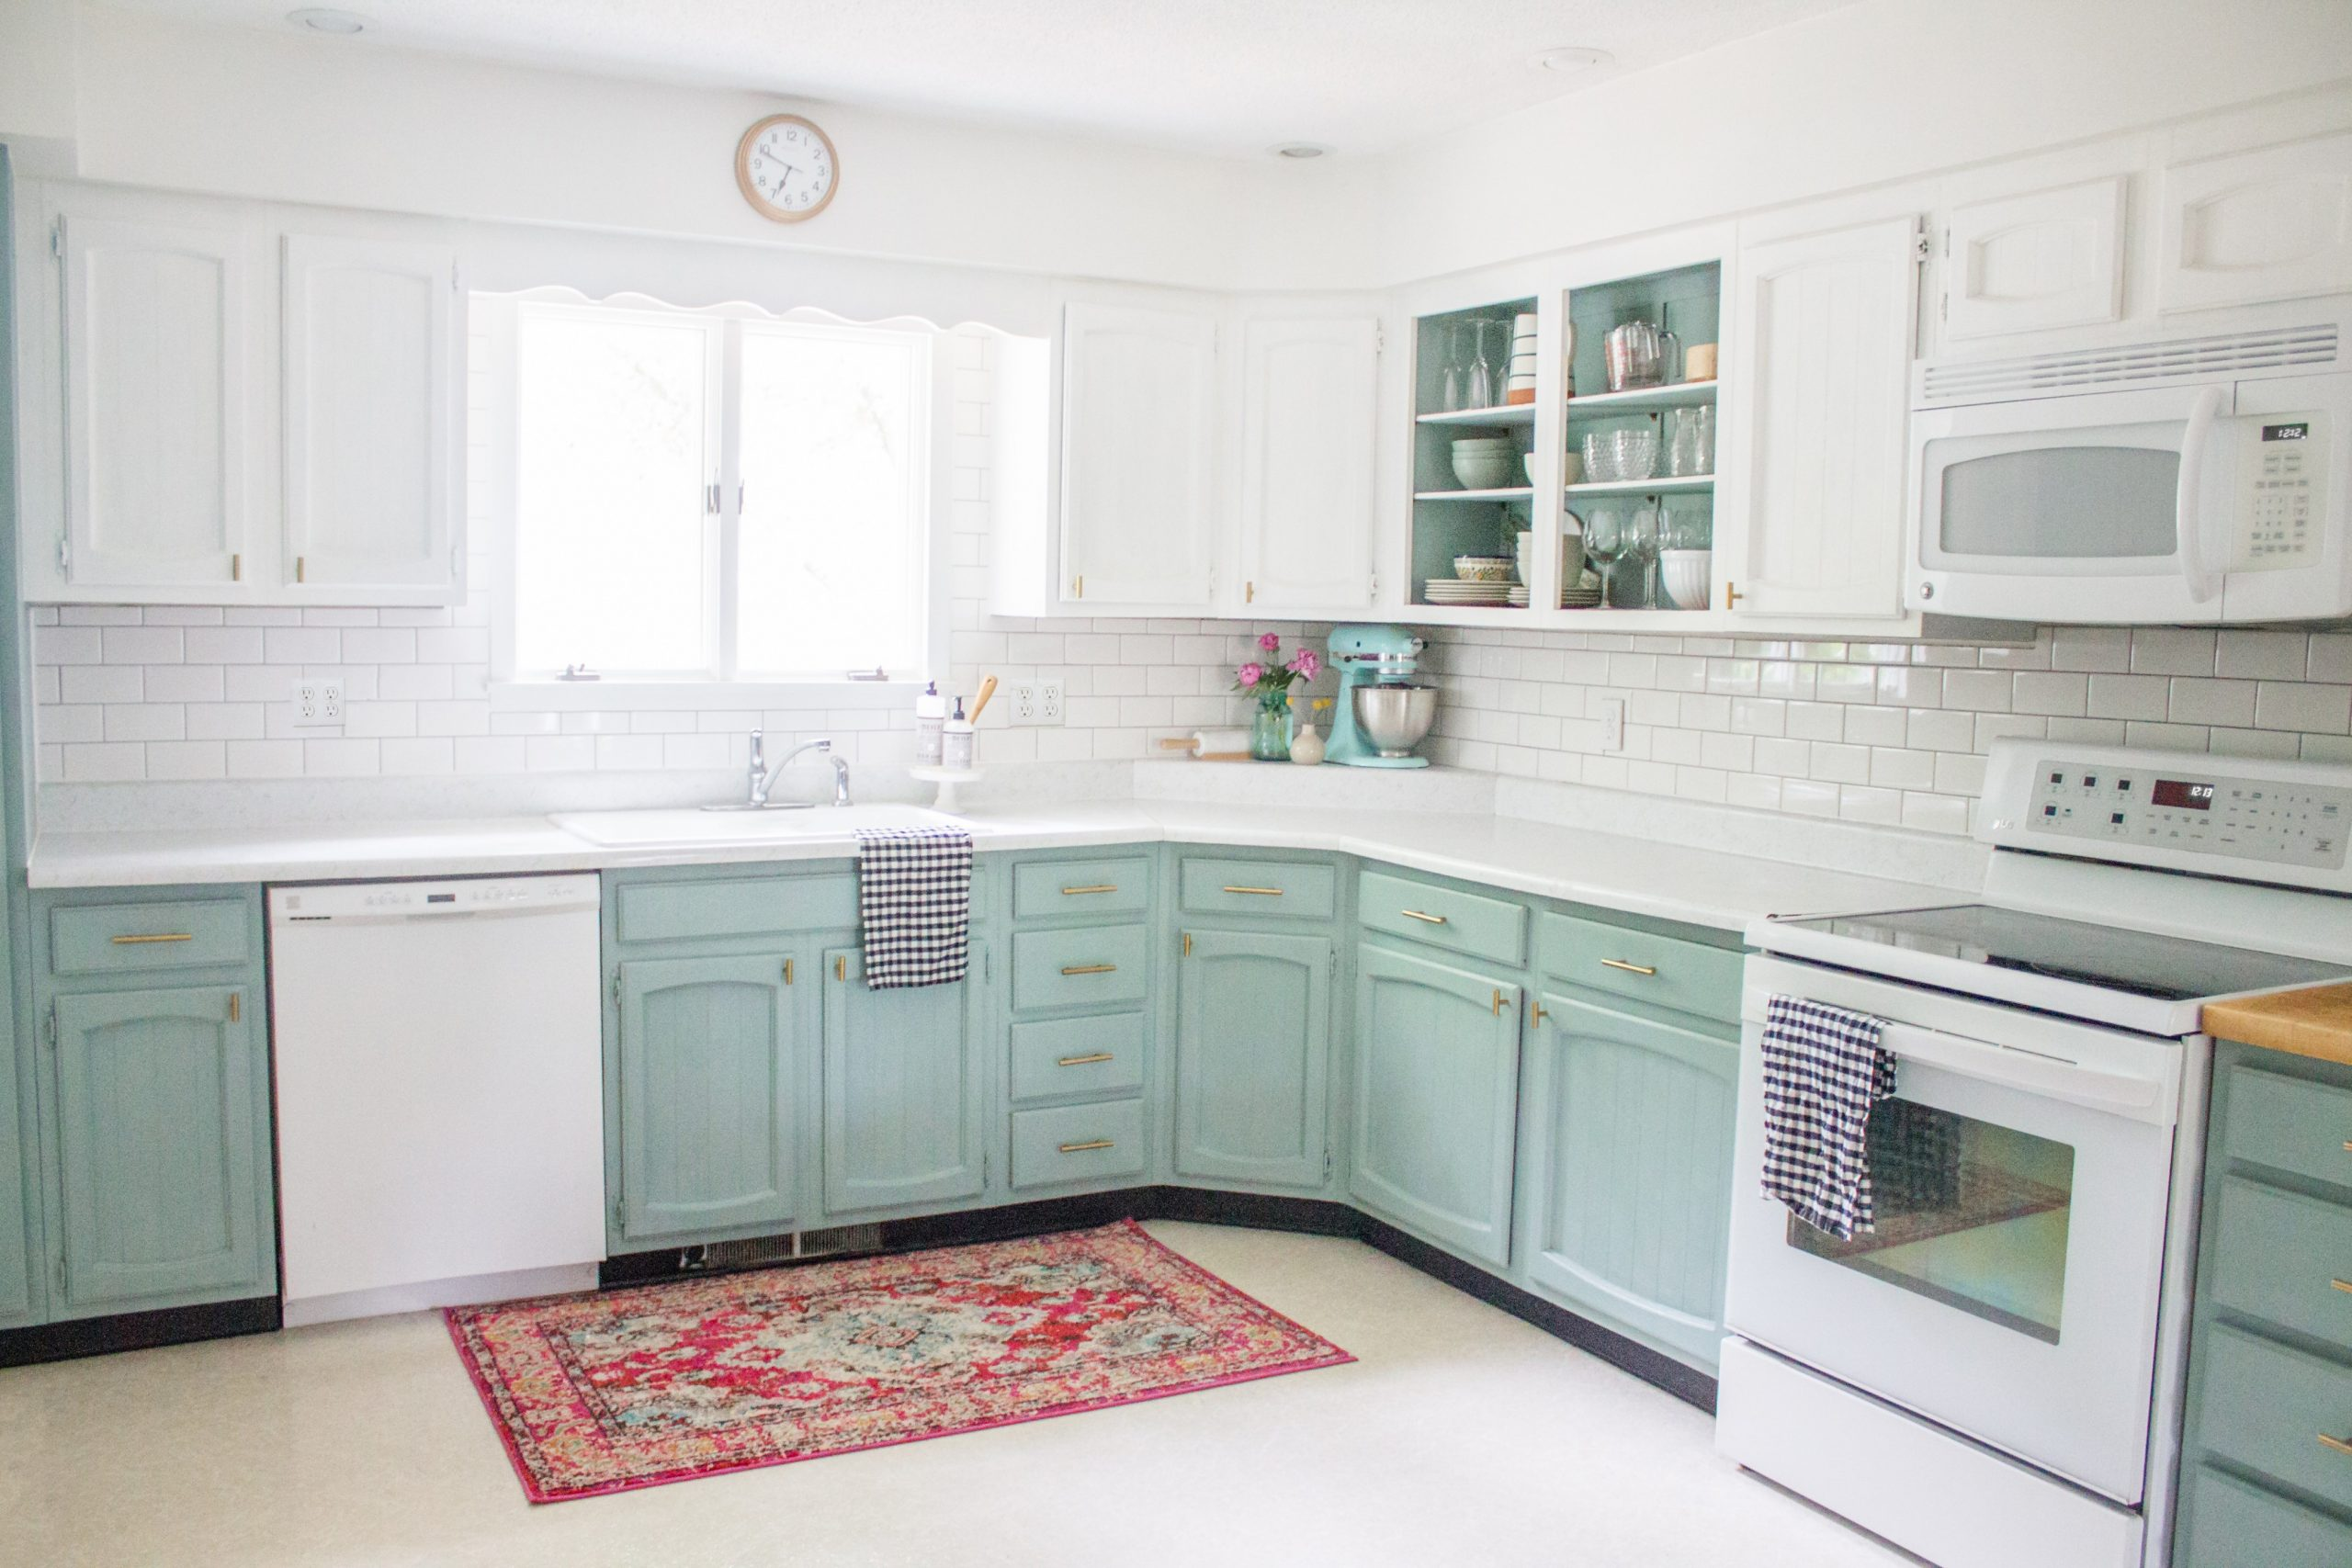 Chalk Painted Kitchen Cabinets Two Years Later  Holland Avenue Home - Diy Chalk Paint On Kitchen Cabinets